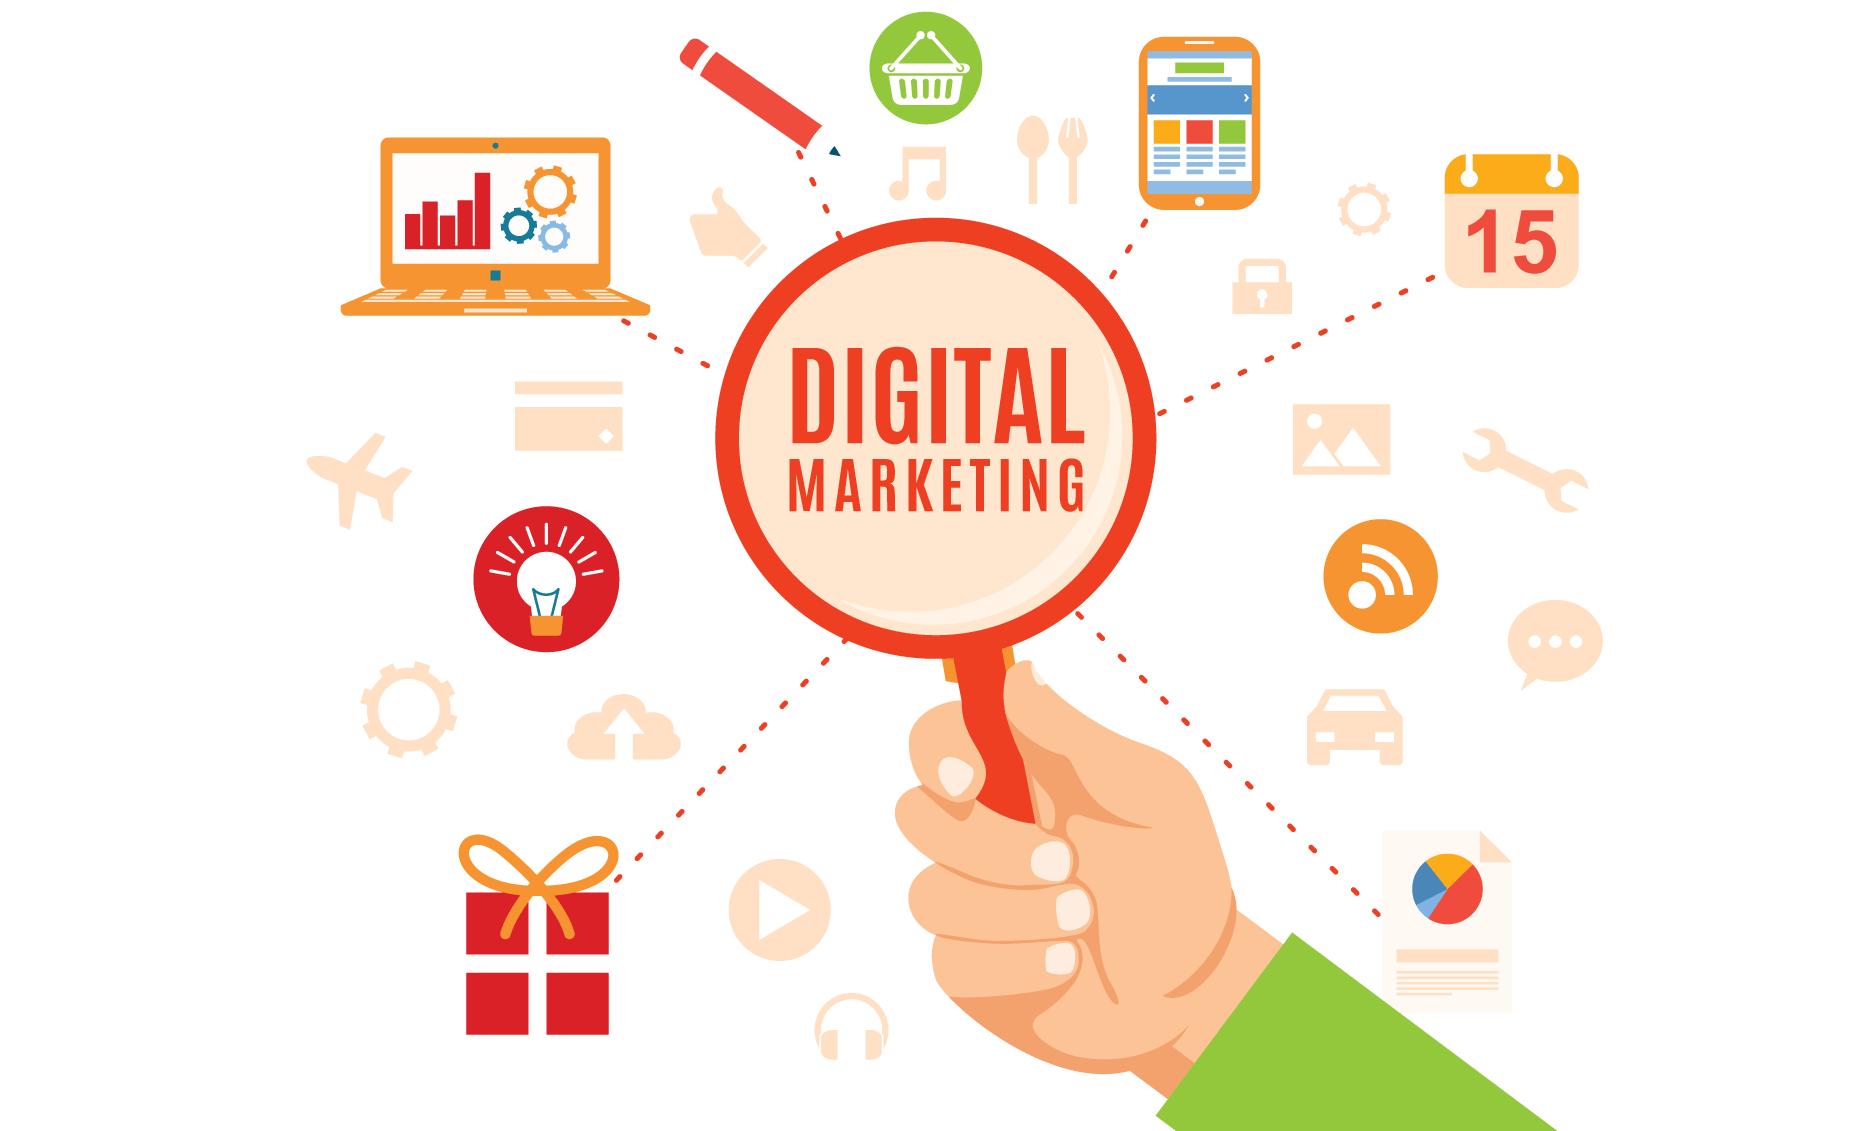 Team of Digital marketing experts to manage your social media account and provide linkedin lead generation solutions - Linkedin Leads is your one stop social media marketing and lead generation company